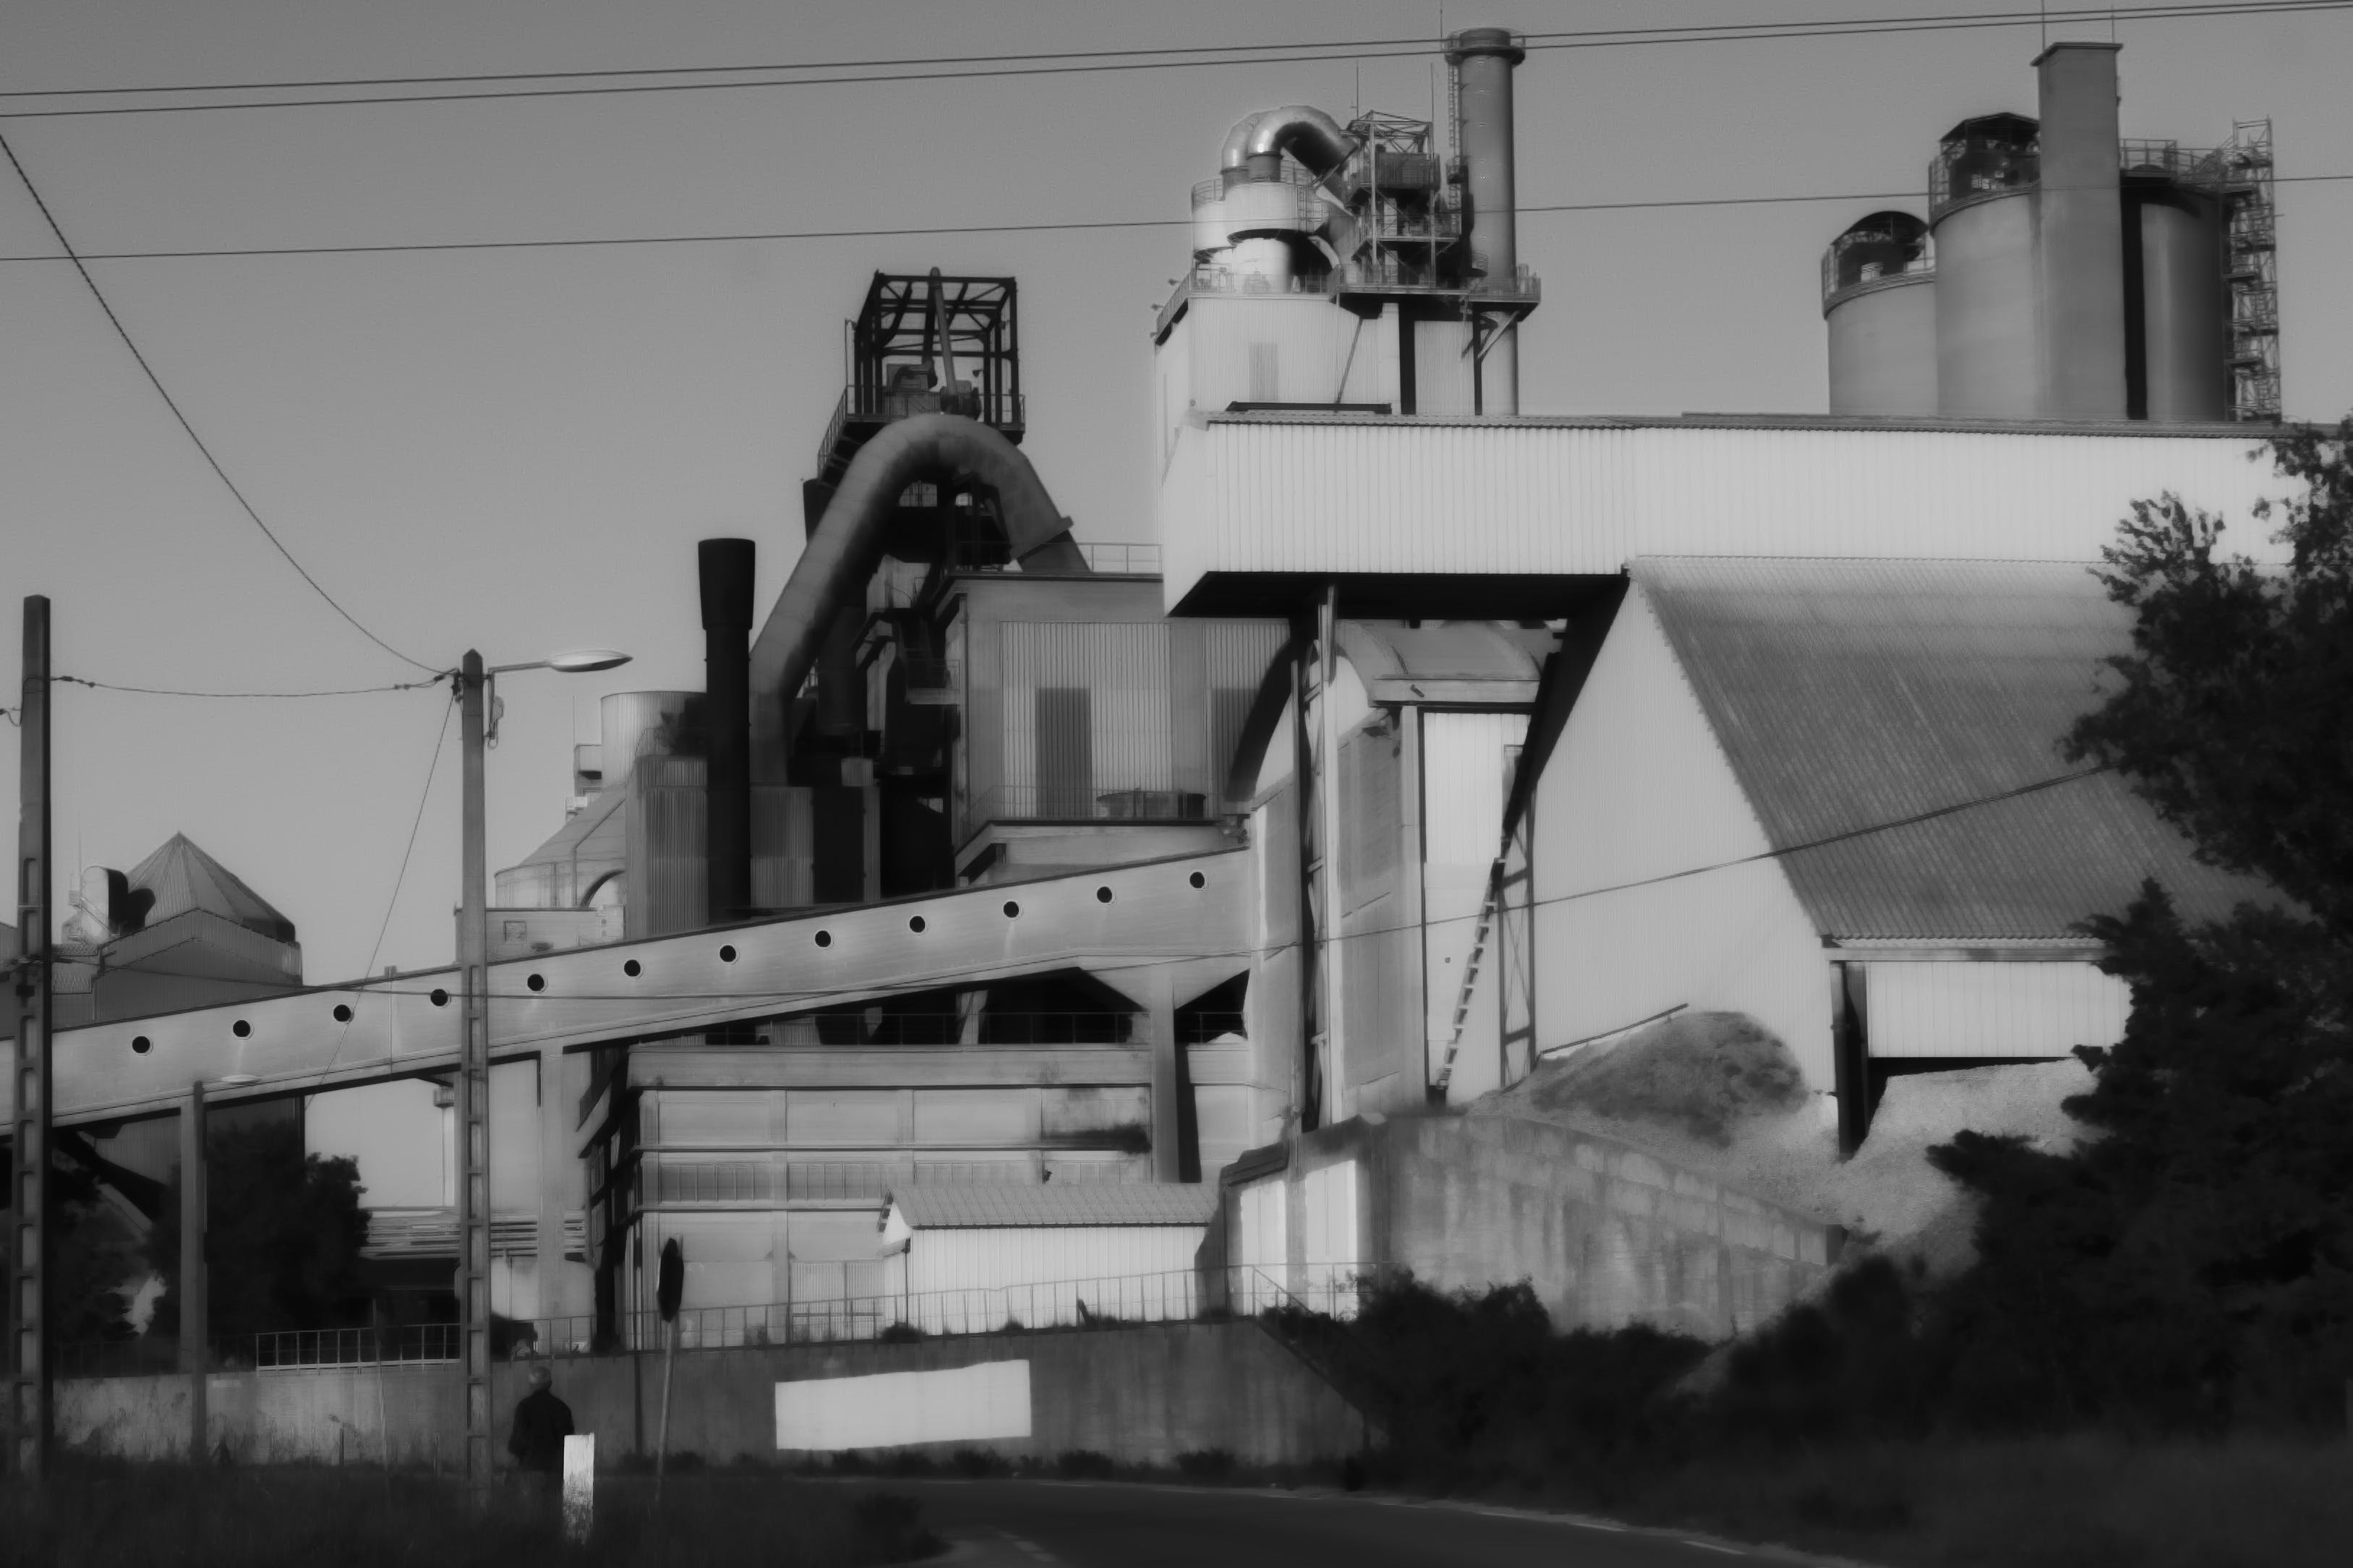 Free stock photo of black and white, cheminee, factory, Industrie